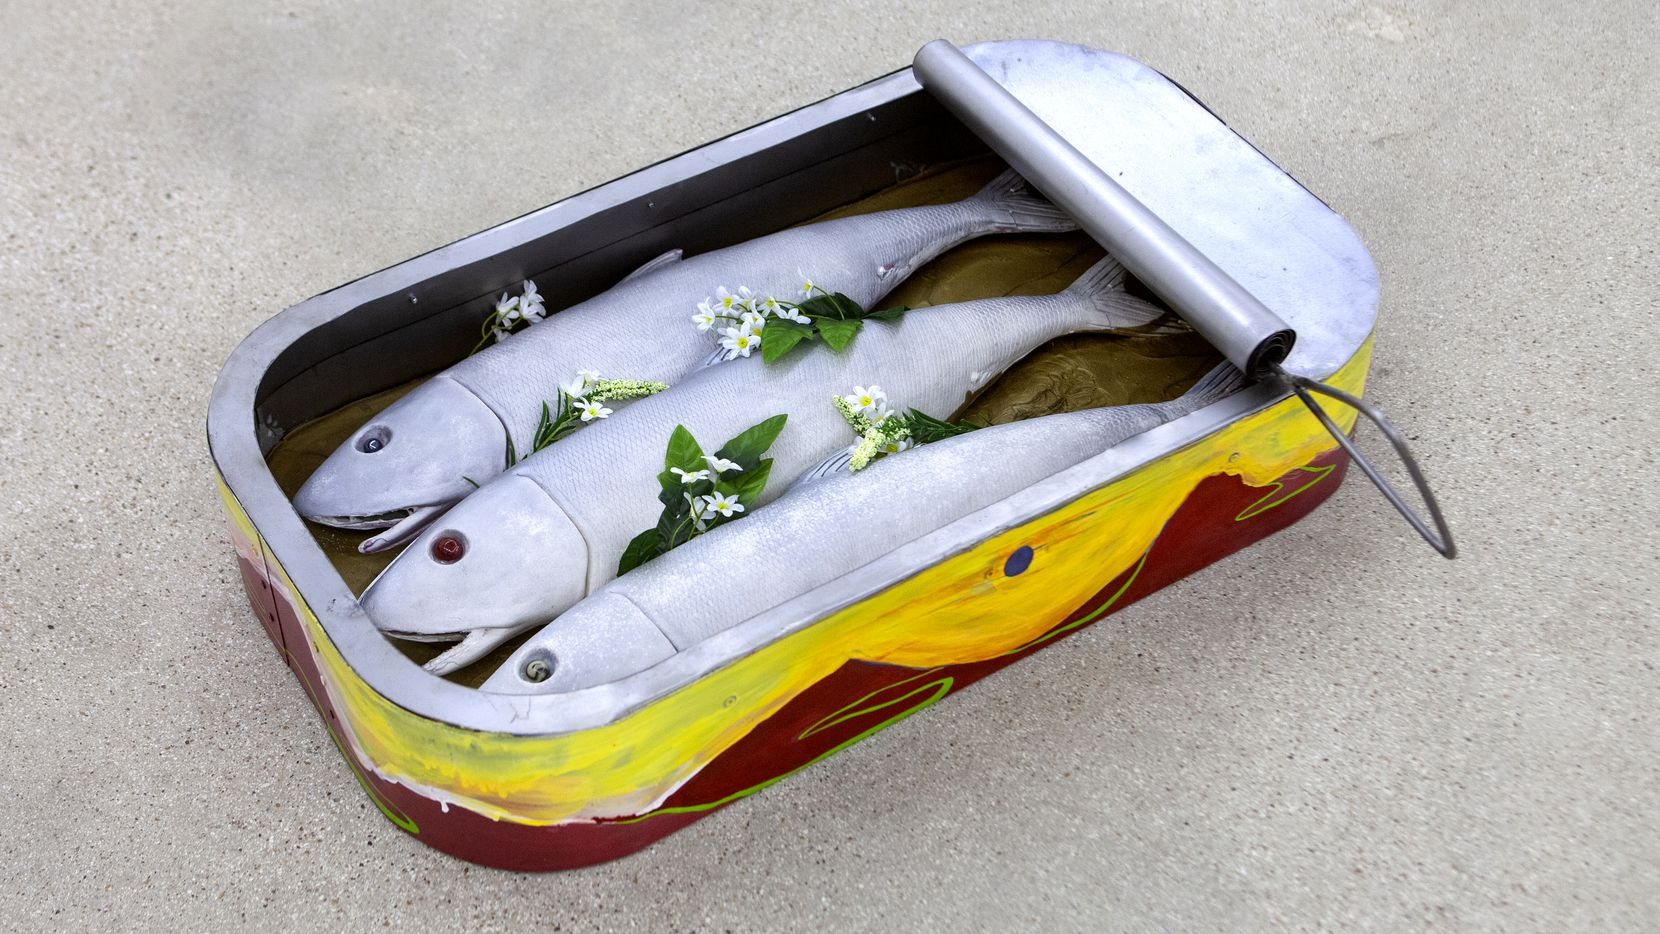 'Middle Voice,' Justine Melford-Colegate's sculpture of three sardines in a tin, is among the works on display at And Now gallery through April 3.